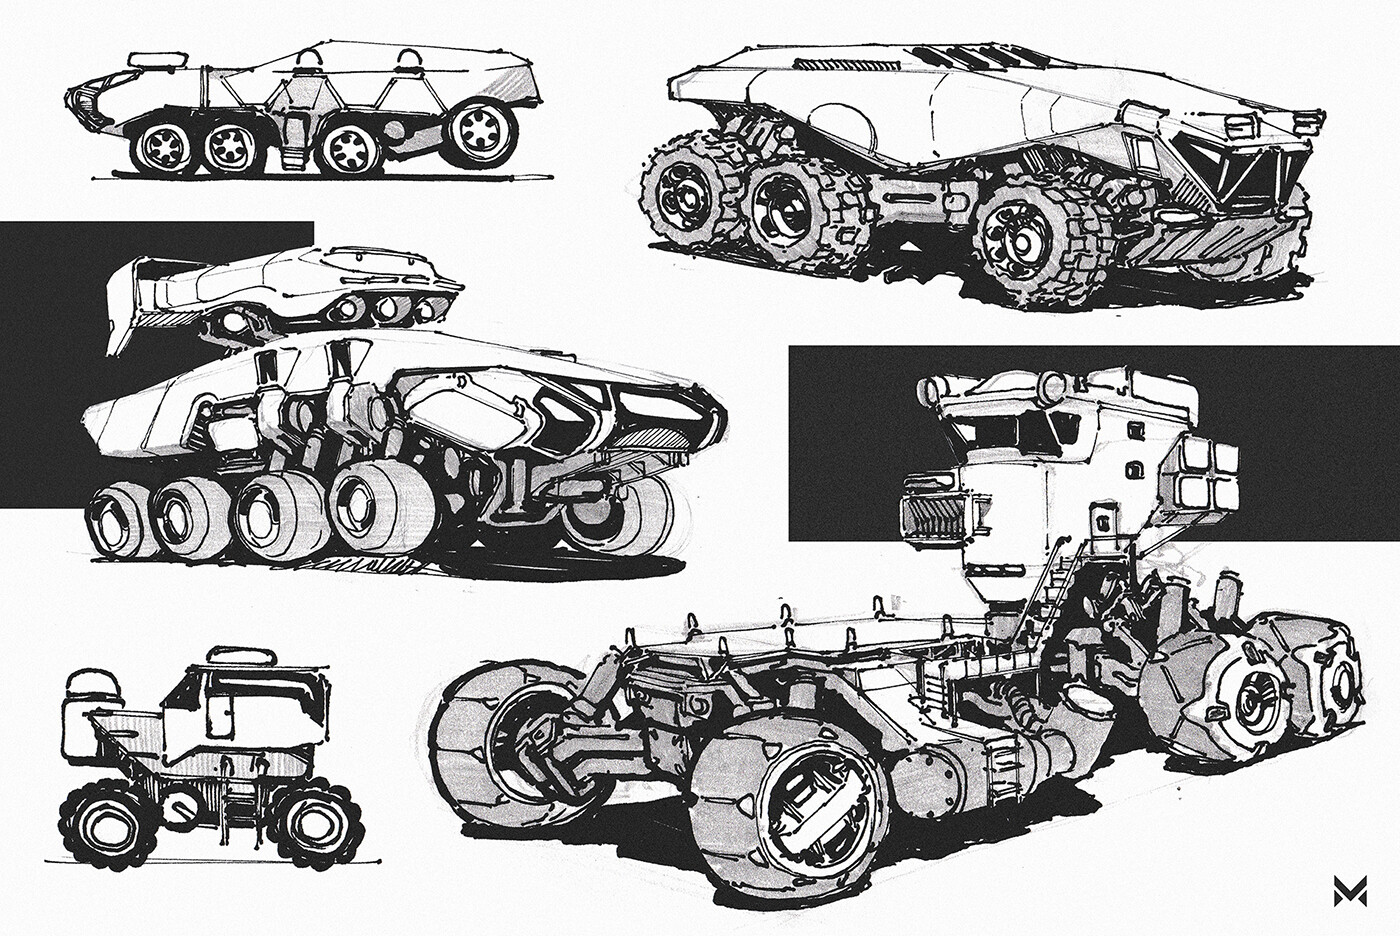 Heavy duty loader-truck concepts